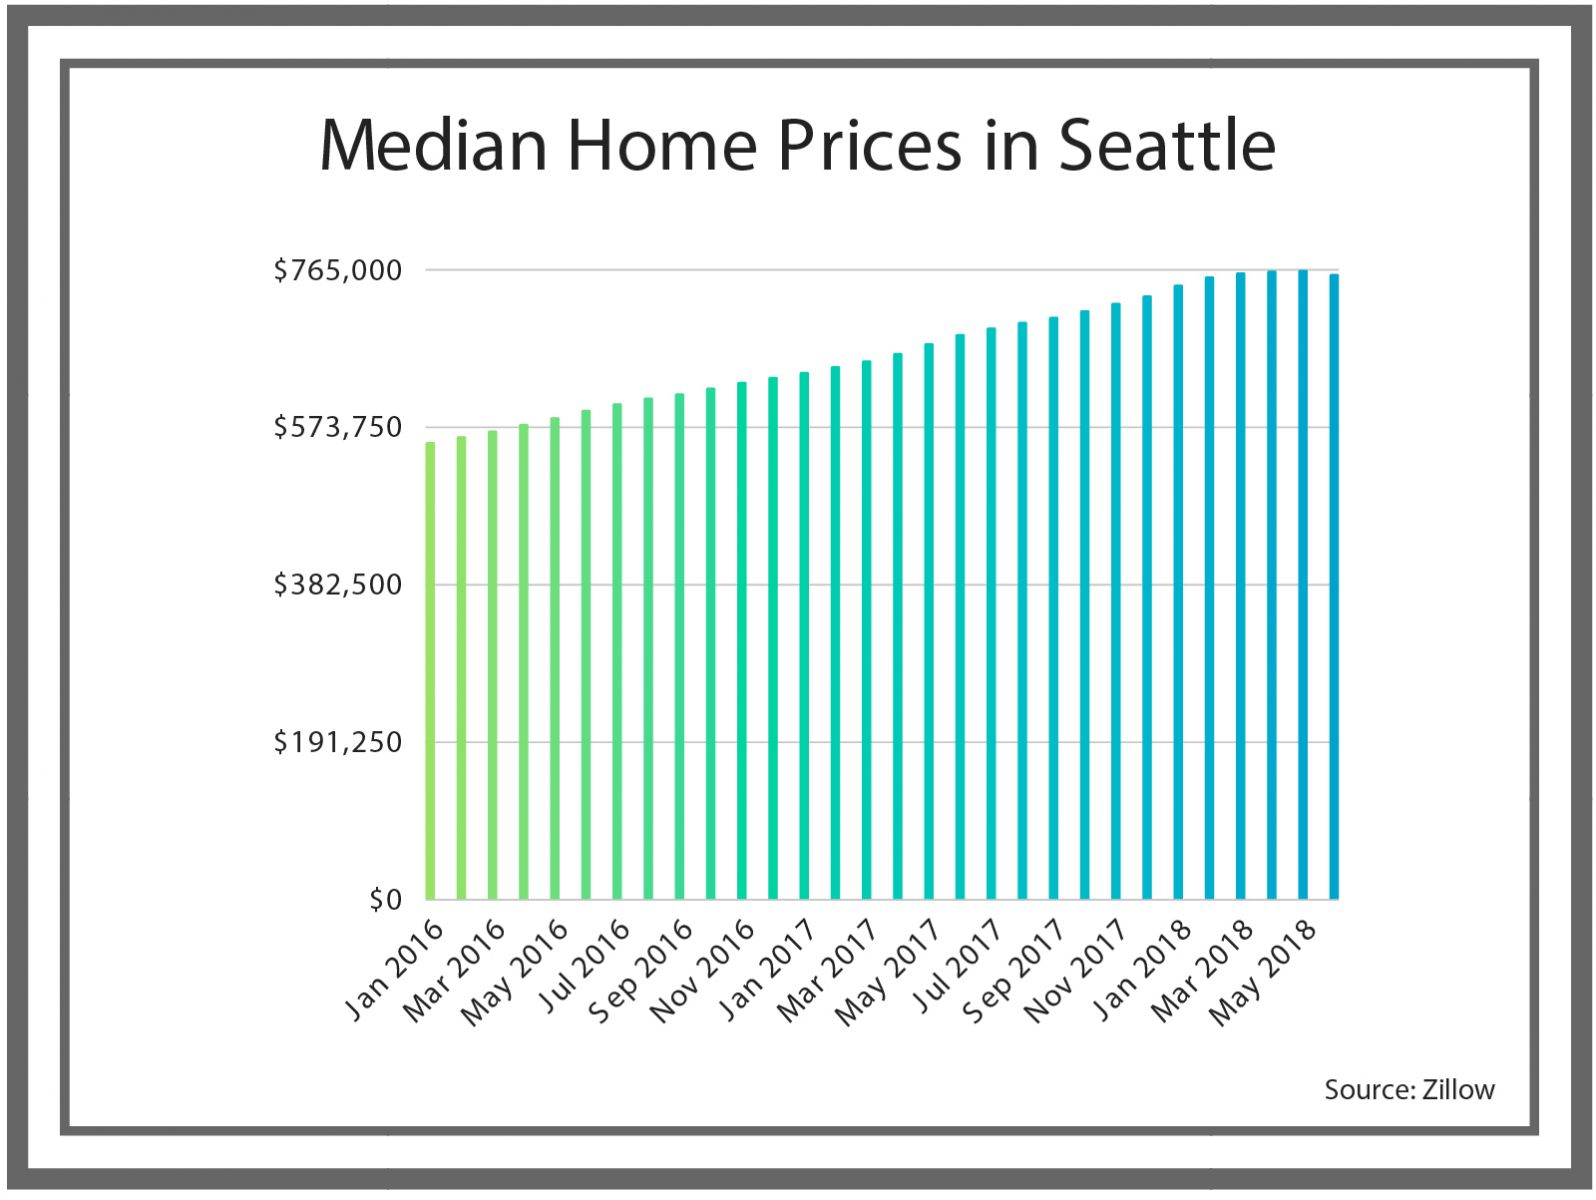 Graph Showing Median Home Prices in Seattle